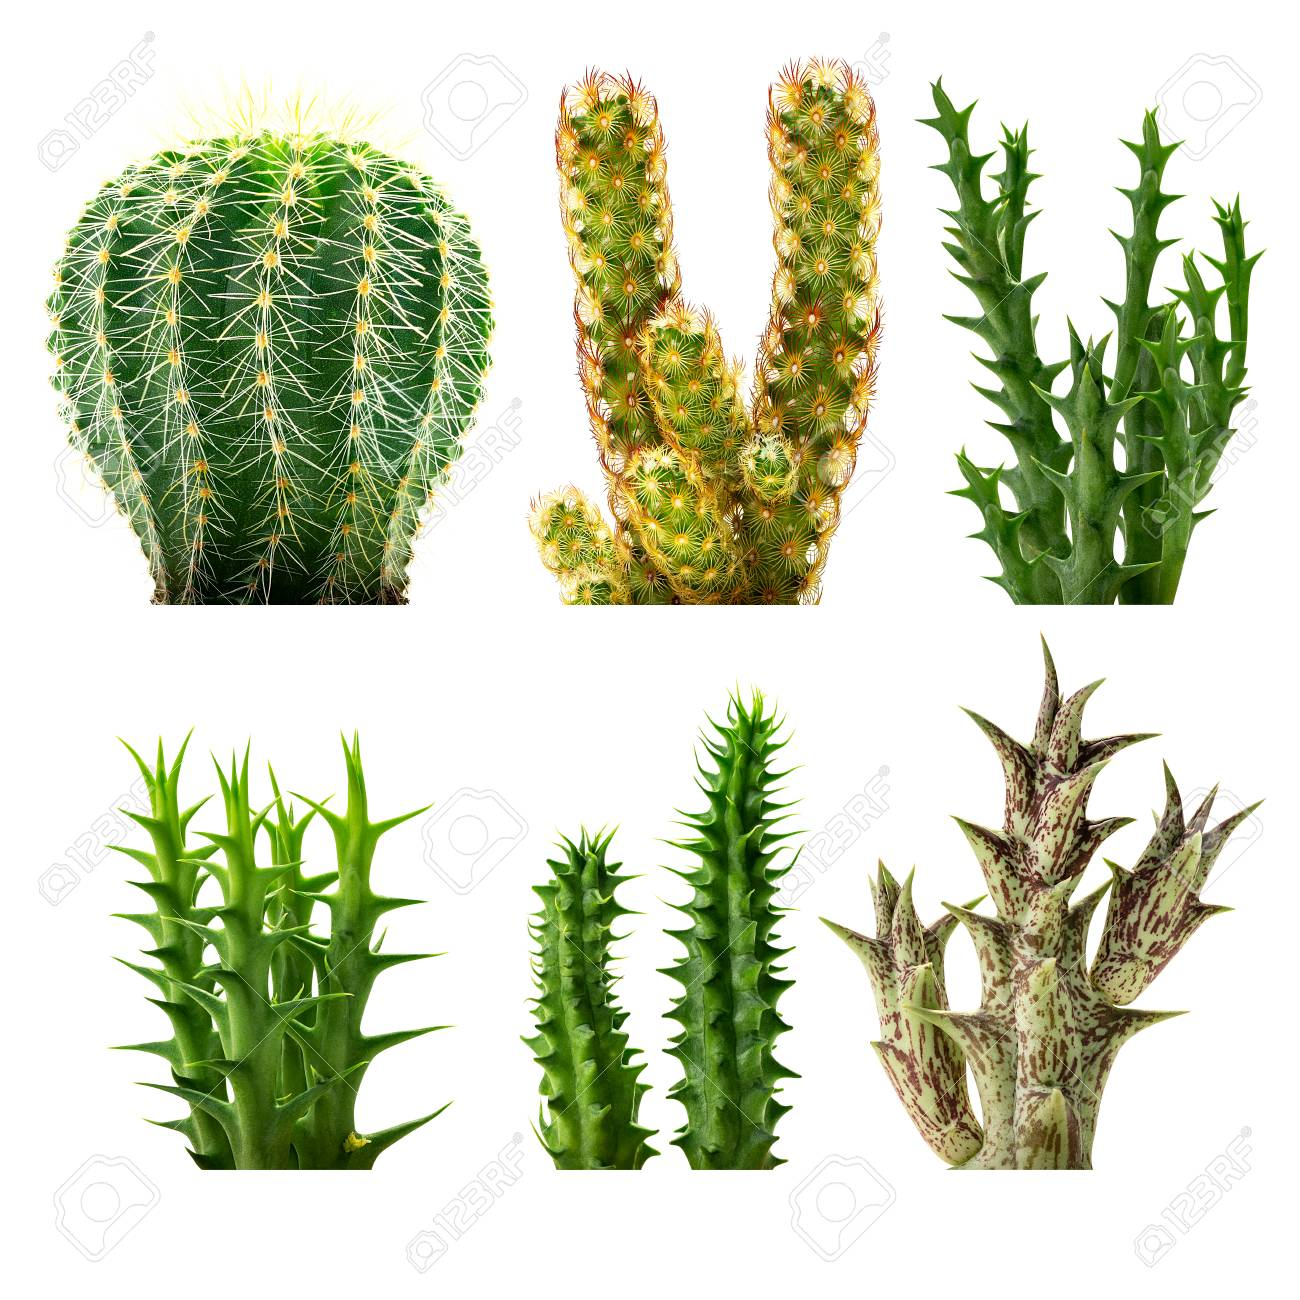 Set Of Desert Plants Isolated On White Background Stock Photo